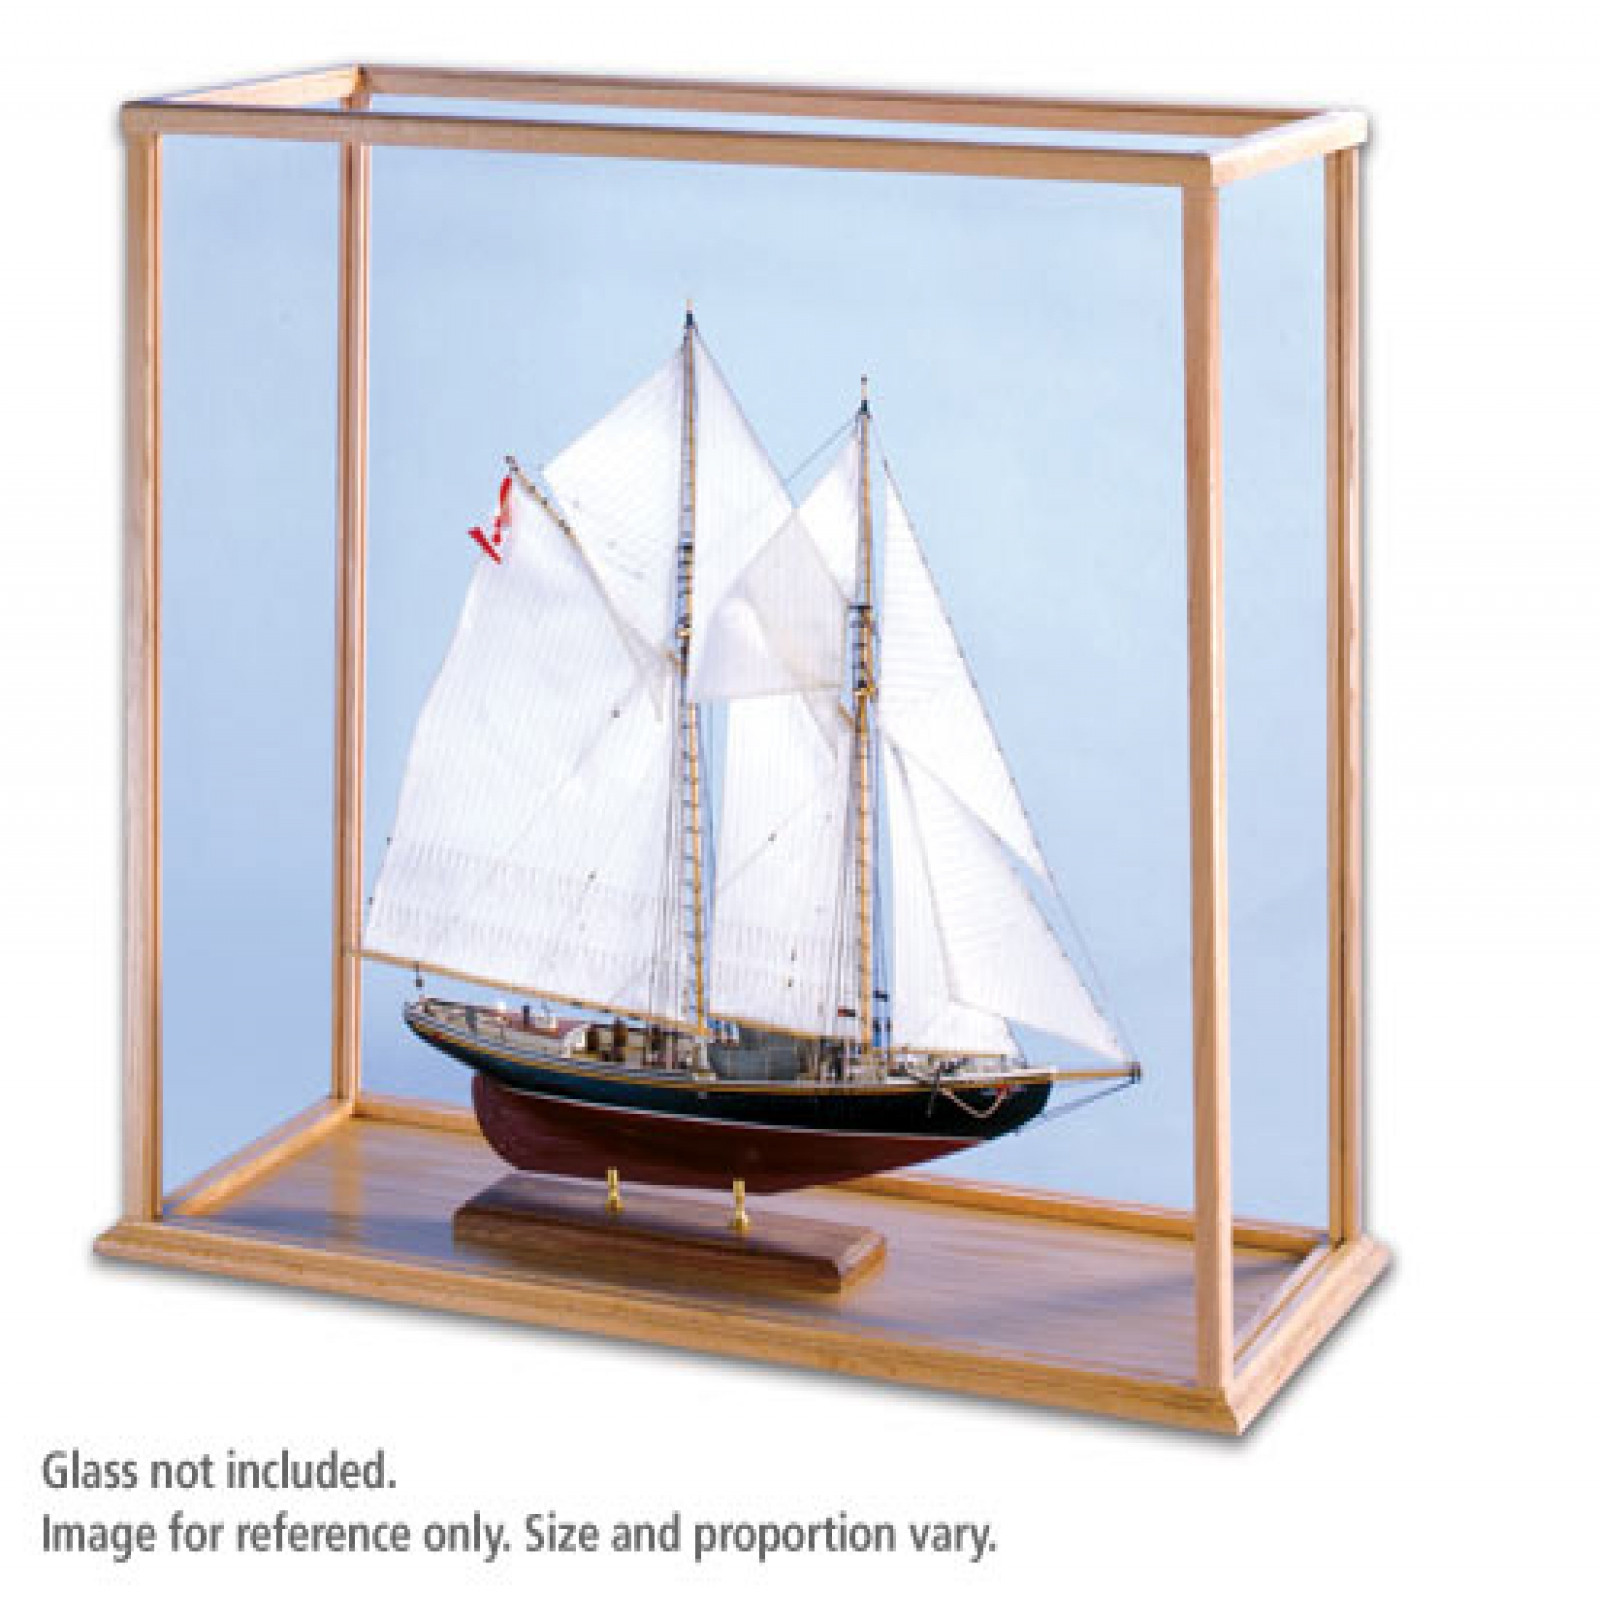 OAK SHIP MODEL CASE   L42 X W16 X H32   KIT